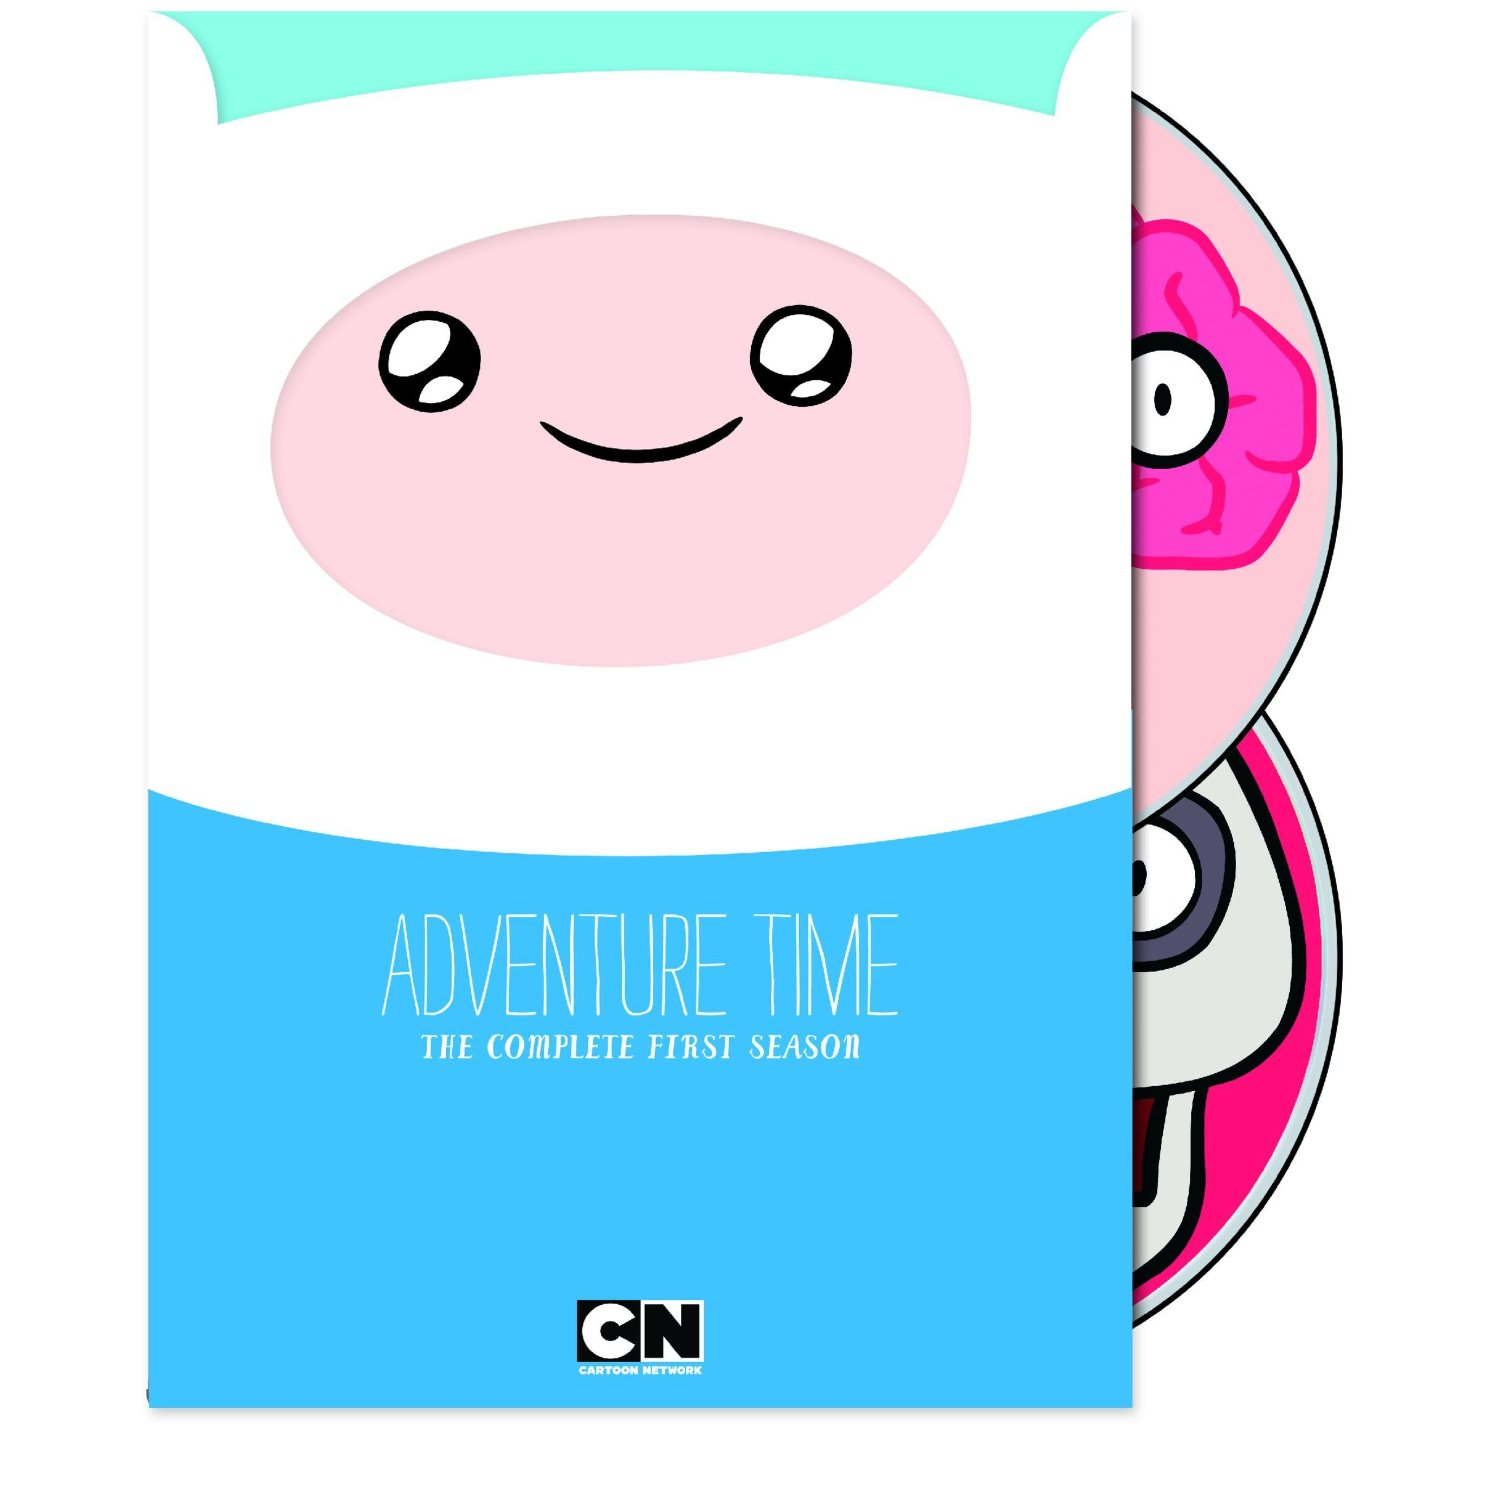 Adventure Time Time Adventure Time Complete First Season